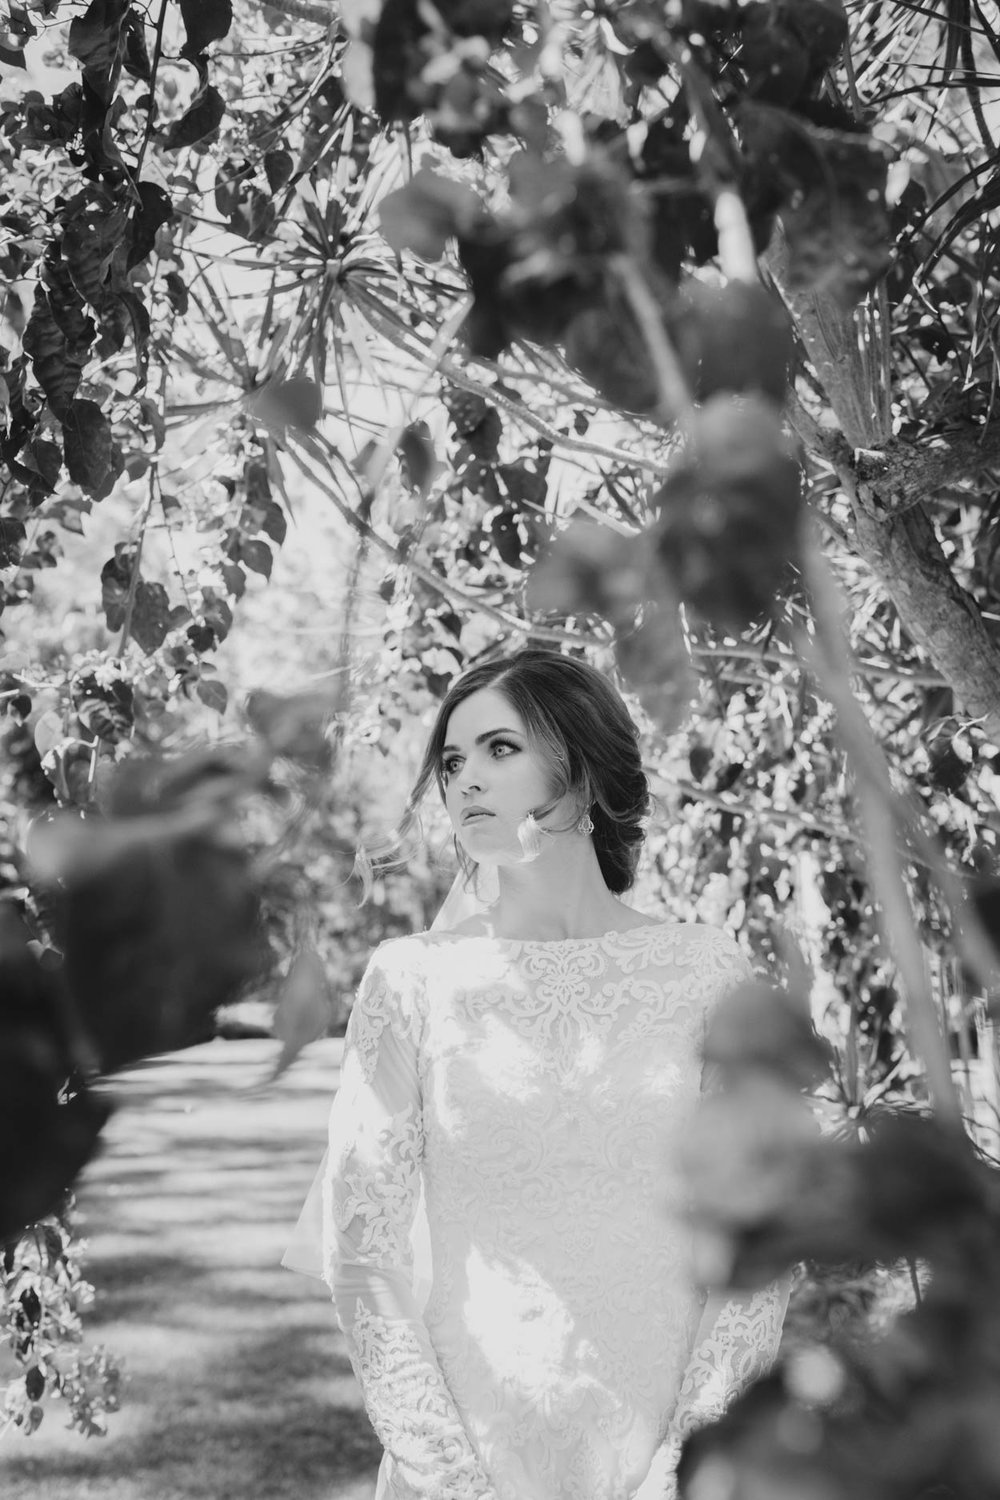 Candid Byron Bay & Bangalow Pre Destination Wedding Photographer - Brisbane, Queensland, Australian